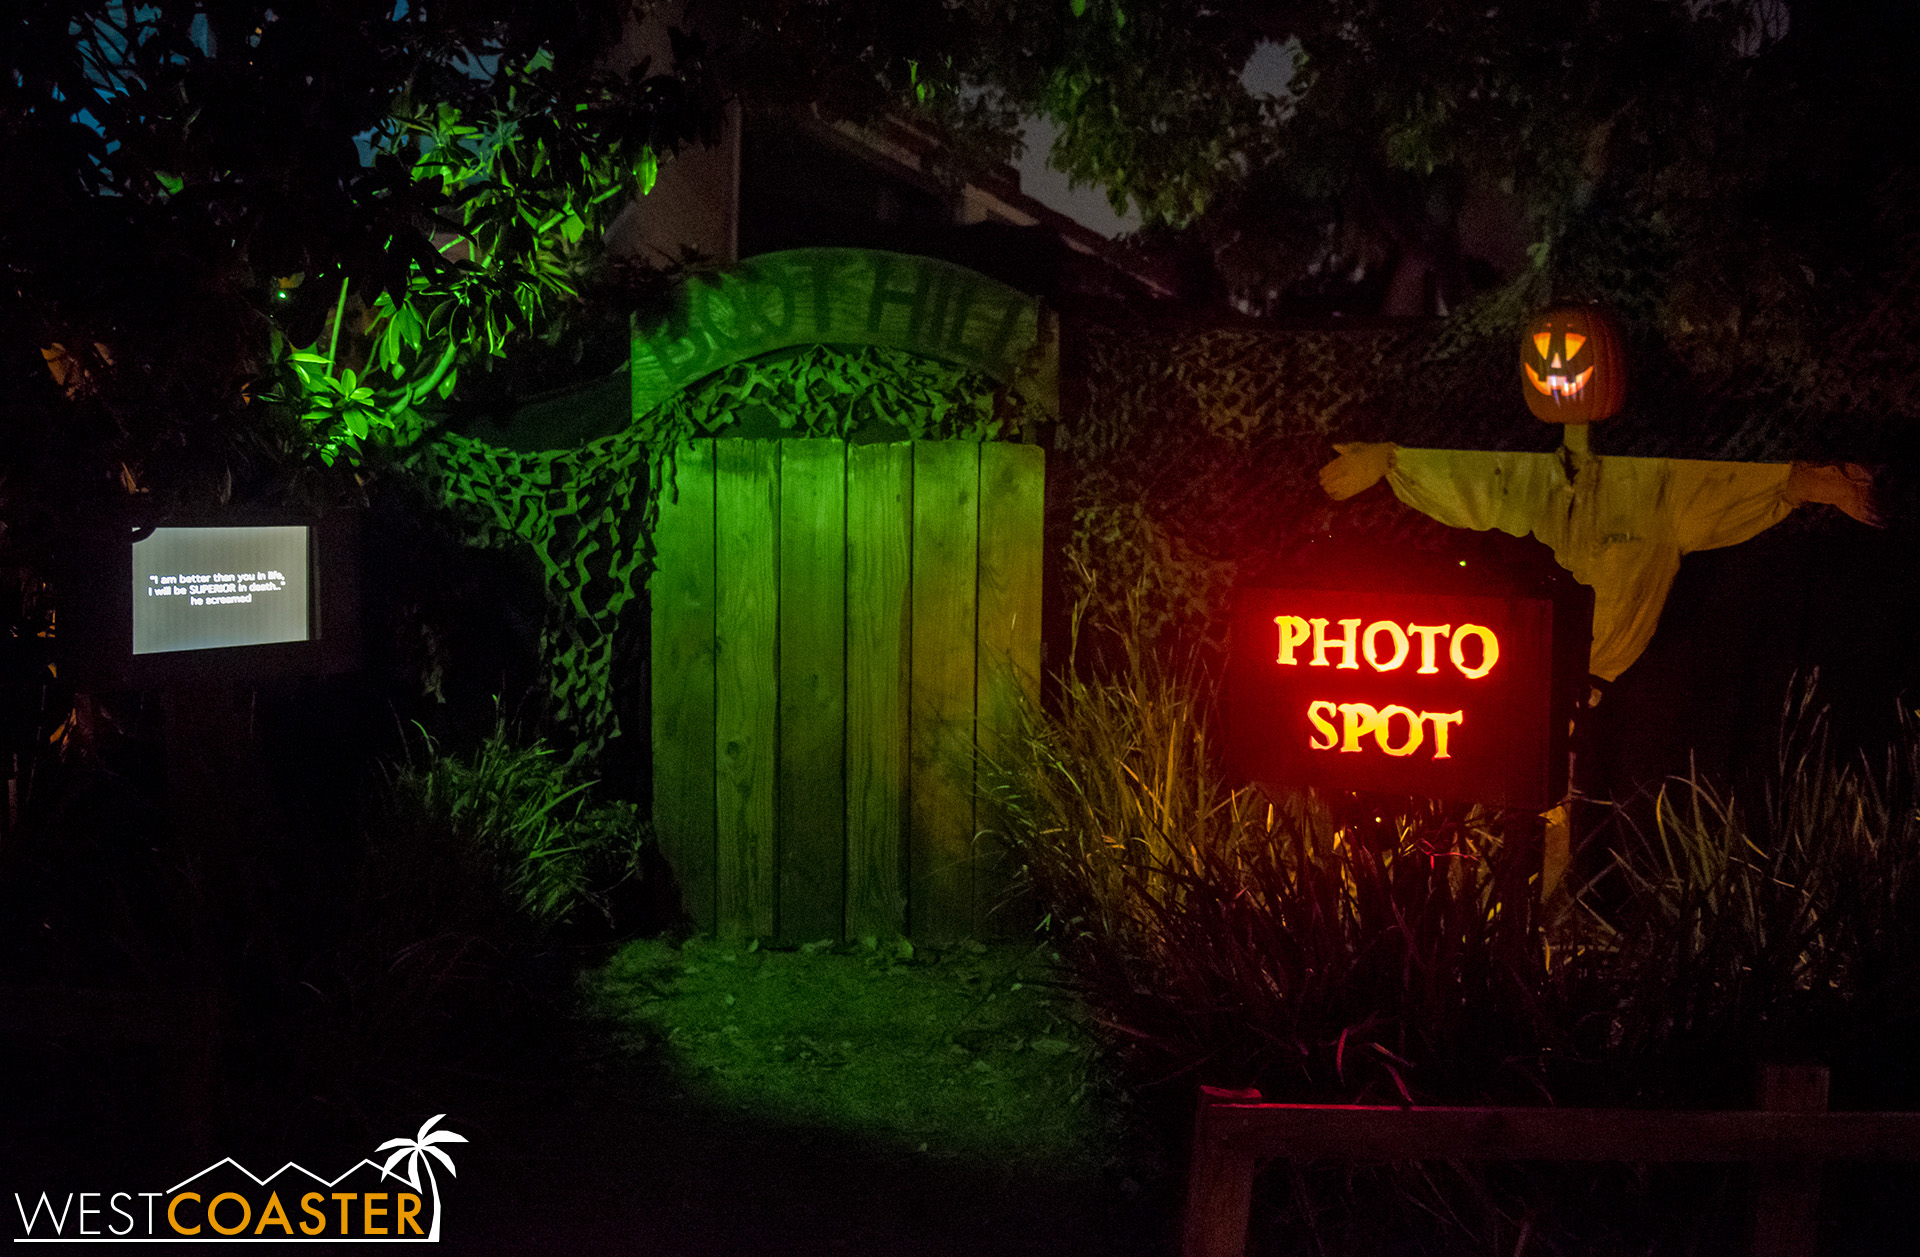 Outside, a photo spot, animated jack-o-lantern commentator, and narration screen help guests pass the wait and learn about Boot Hill's backstory.